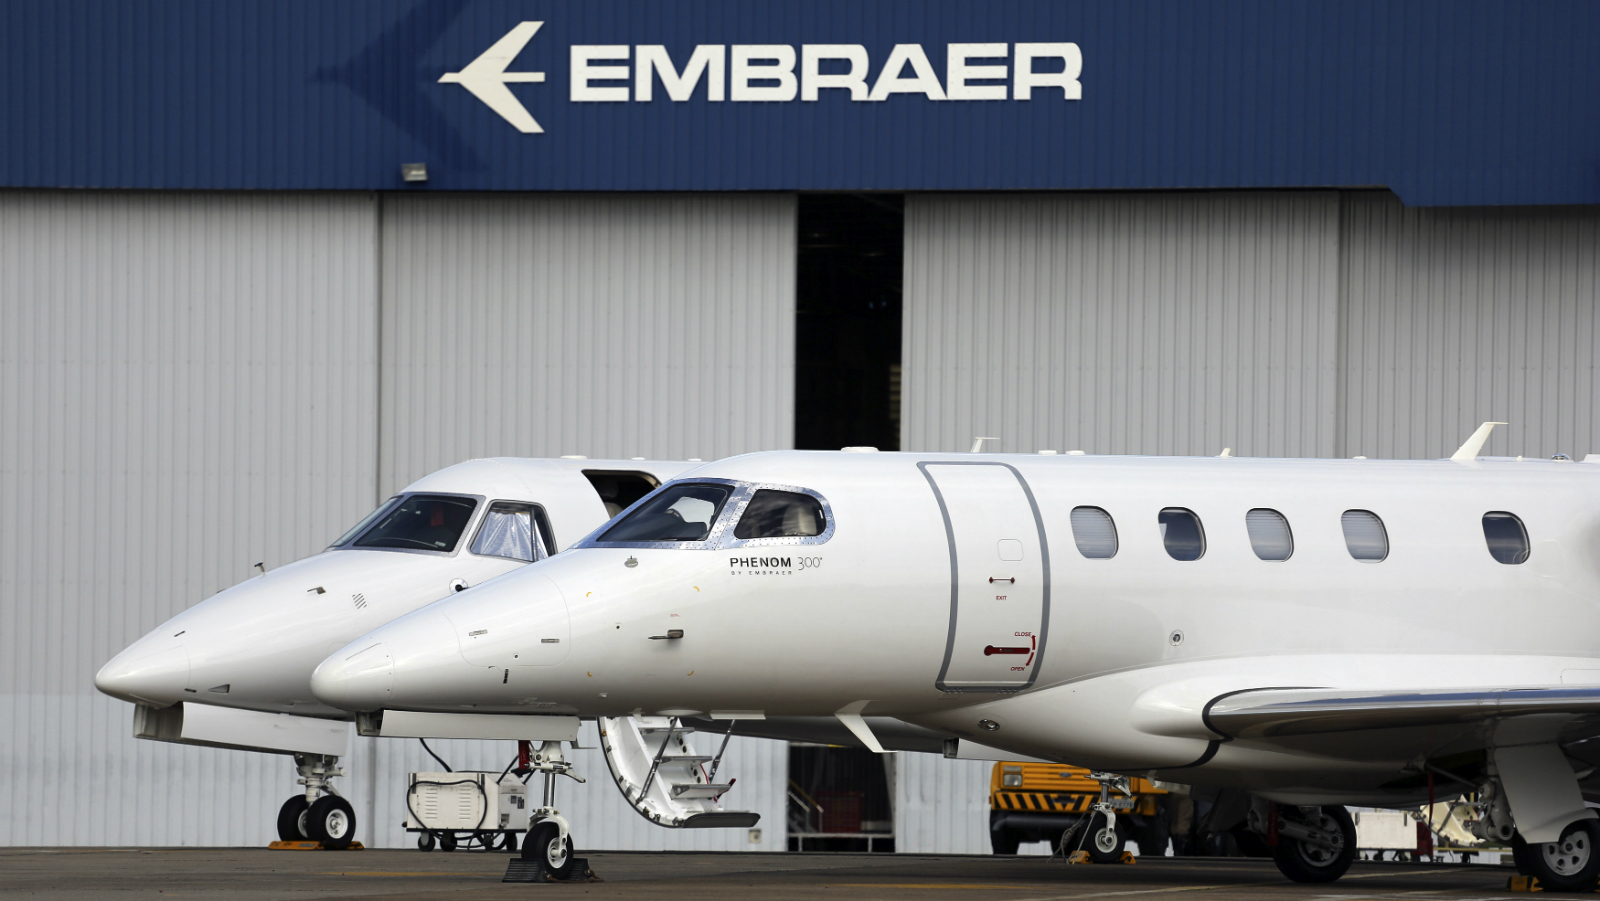 Private jets are seen at the Embraer headquarters in Sao Jose dos Campos, 100 km (62 miles) from Sao Paulo May 14, 2013. Brazil's barriers to international trade are limiting its growth potential and could hamper a huge infrastructure push at the center of President Dilma Rousseff's industrial agenda, the head of the U.S. Commerce Department said in a Tuesday interview. Acting Commerce Secretary Rebecca Blank suggested the advantages given to Brazilian industries through import taxes and restrictions on government-led investments may even slow the development of globally competitive companies.